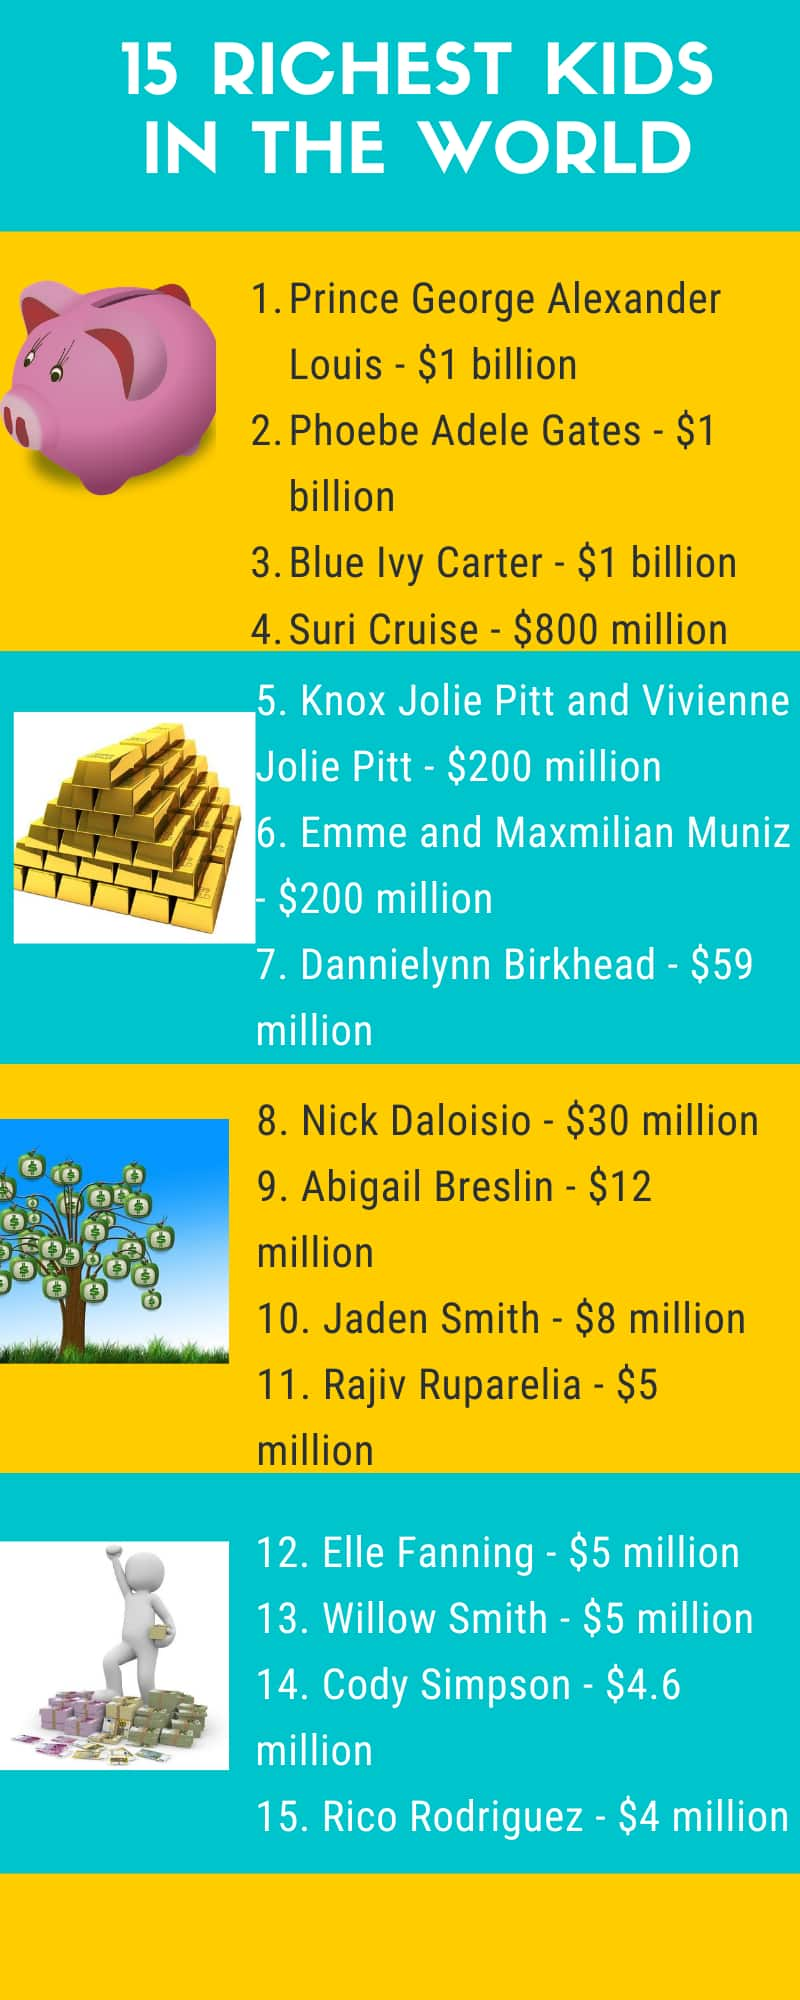 Richest kids in the world